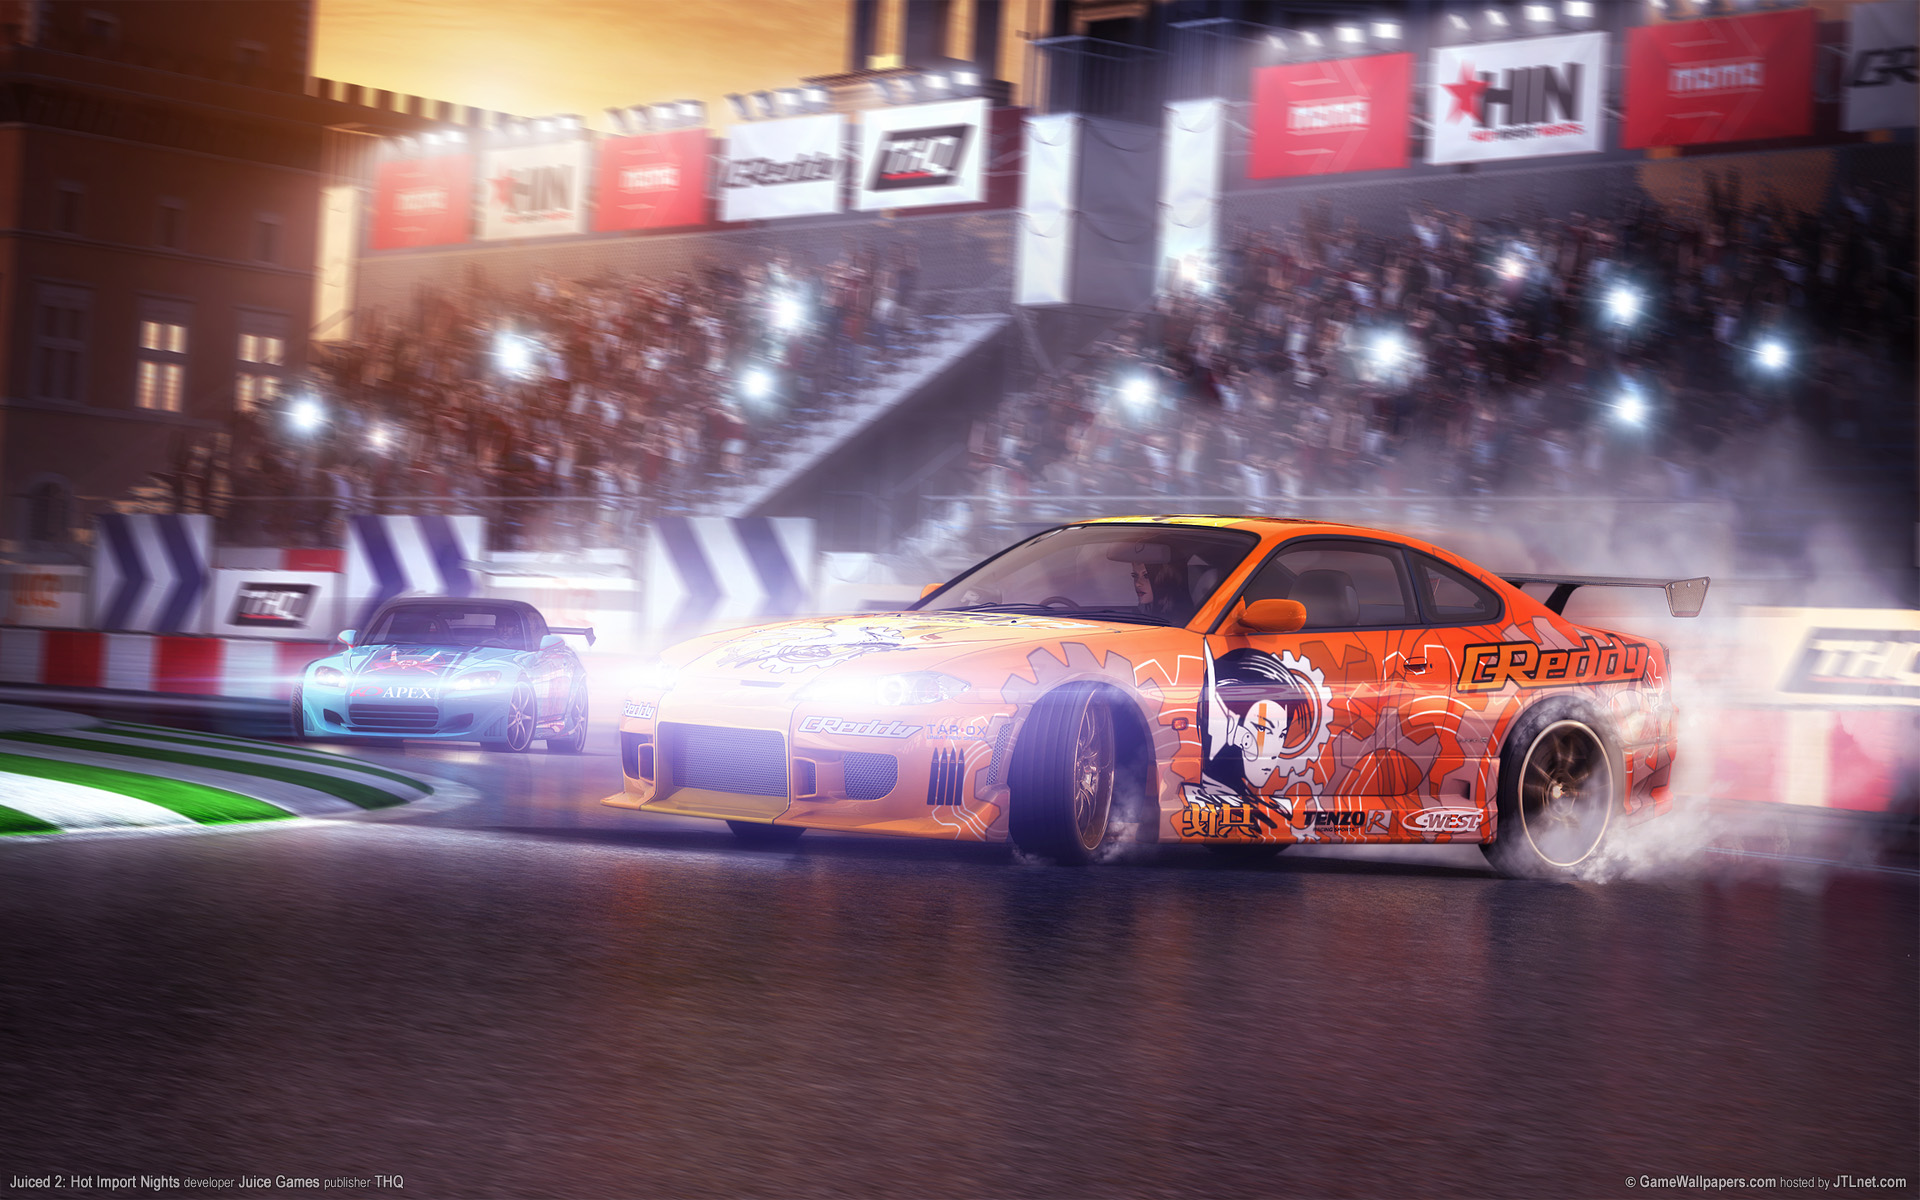 wallpaper_juiced_2_hot_import_nights_01_1920x1200.jpg